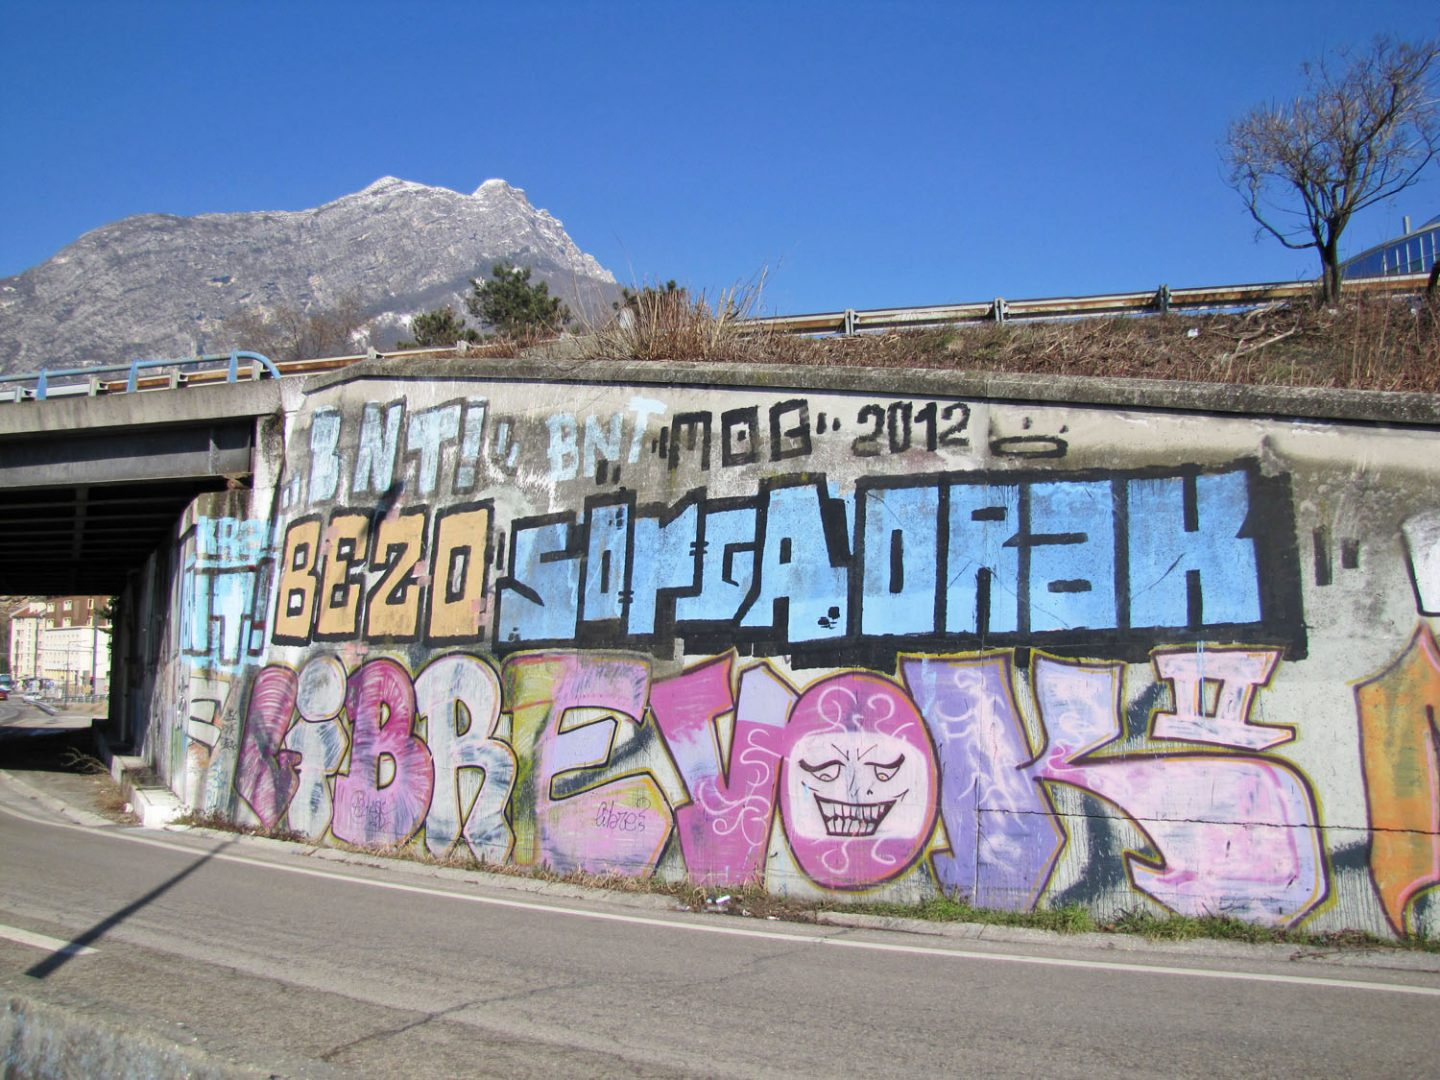 Grenoble - Vandals in the Alps